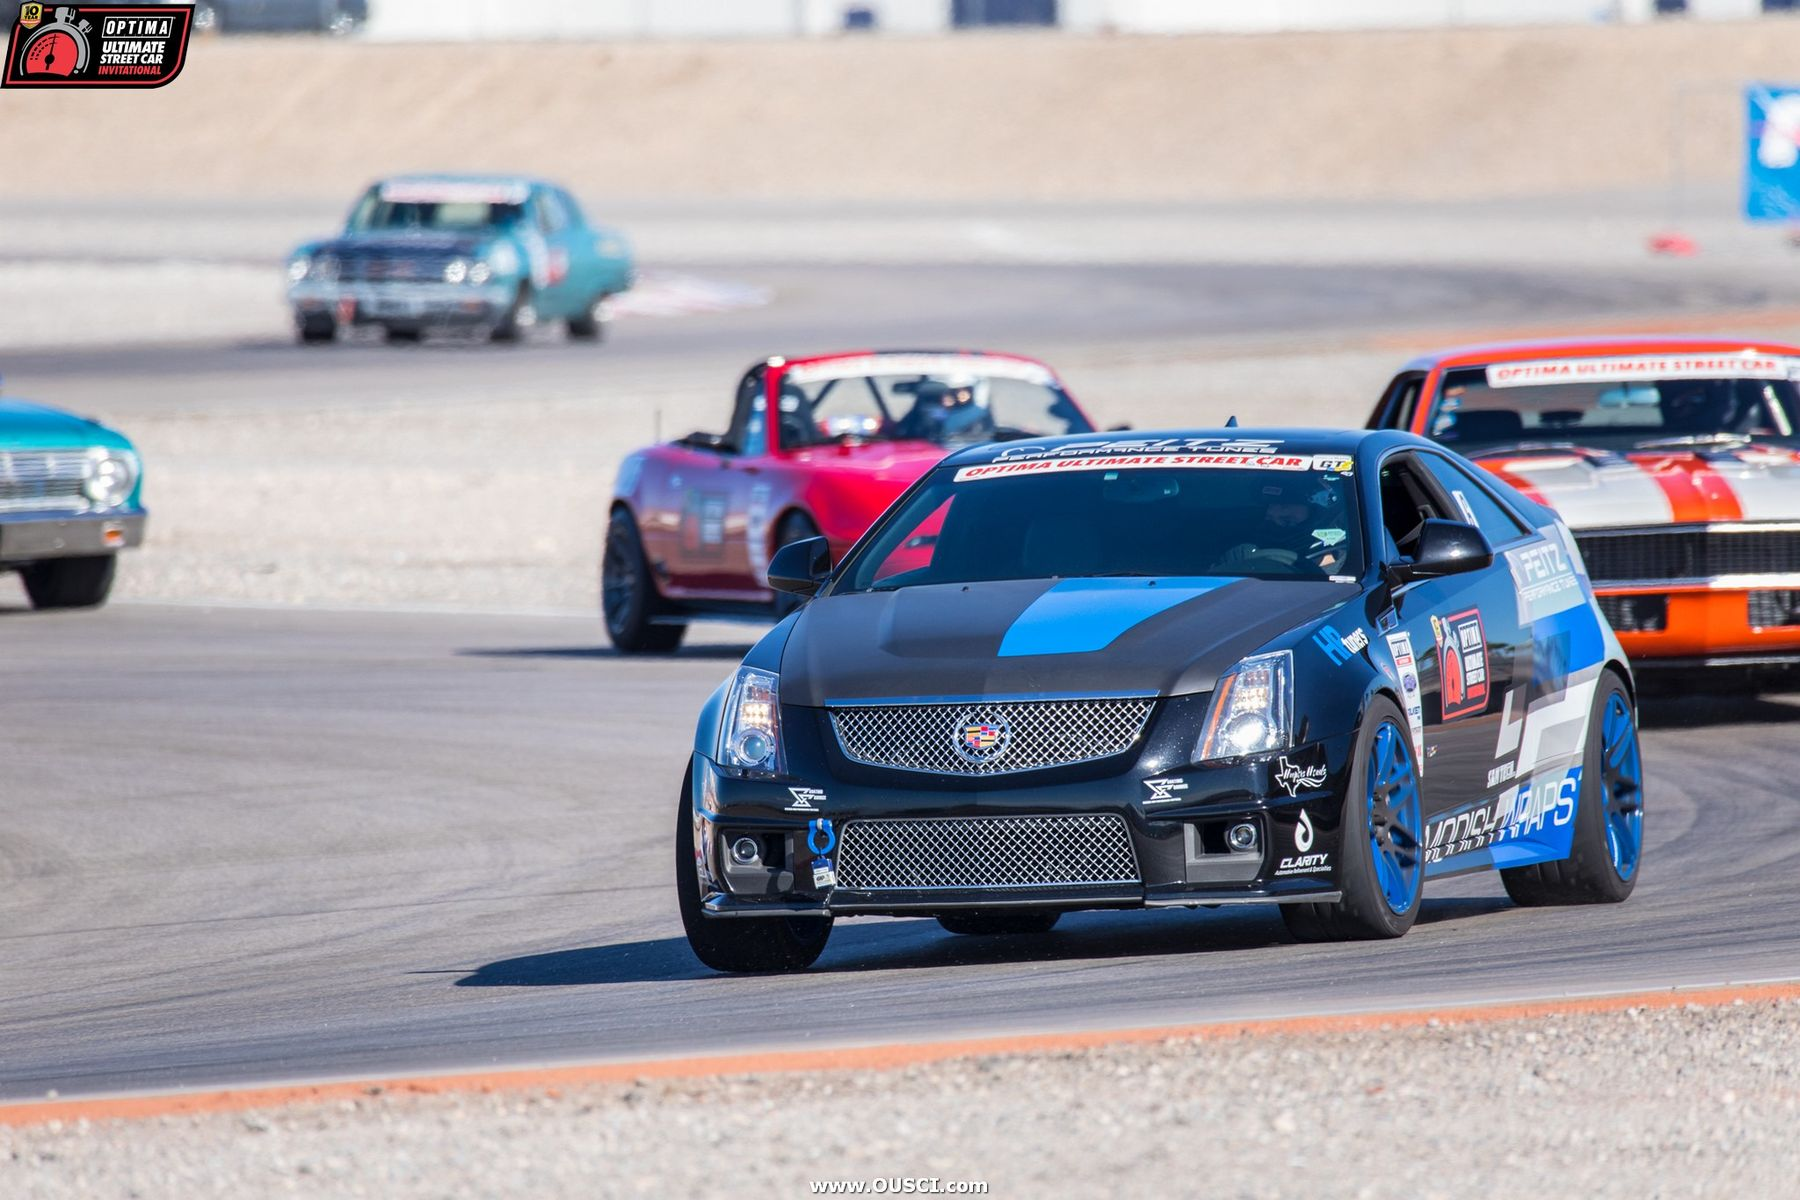 2011 Cadillac CTS-V Coupe | Alex Pietz's 2011 Cadillac CTS-V Coupe